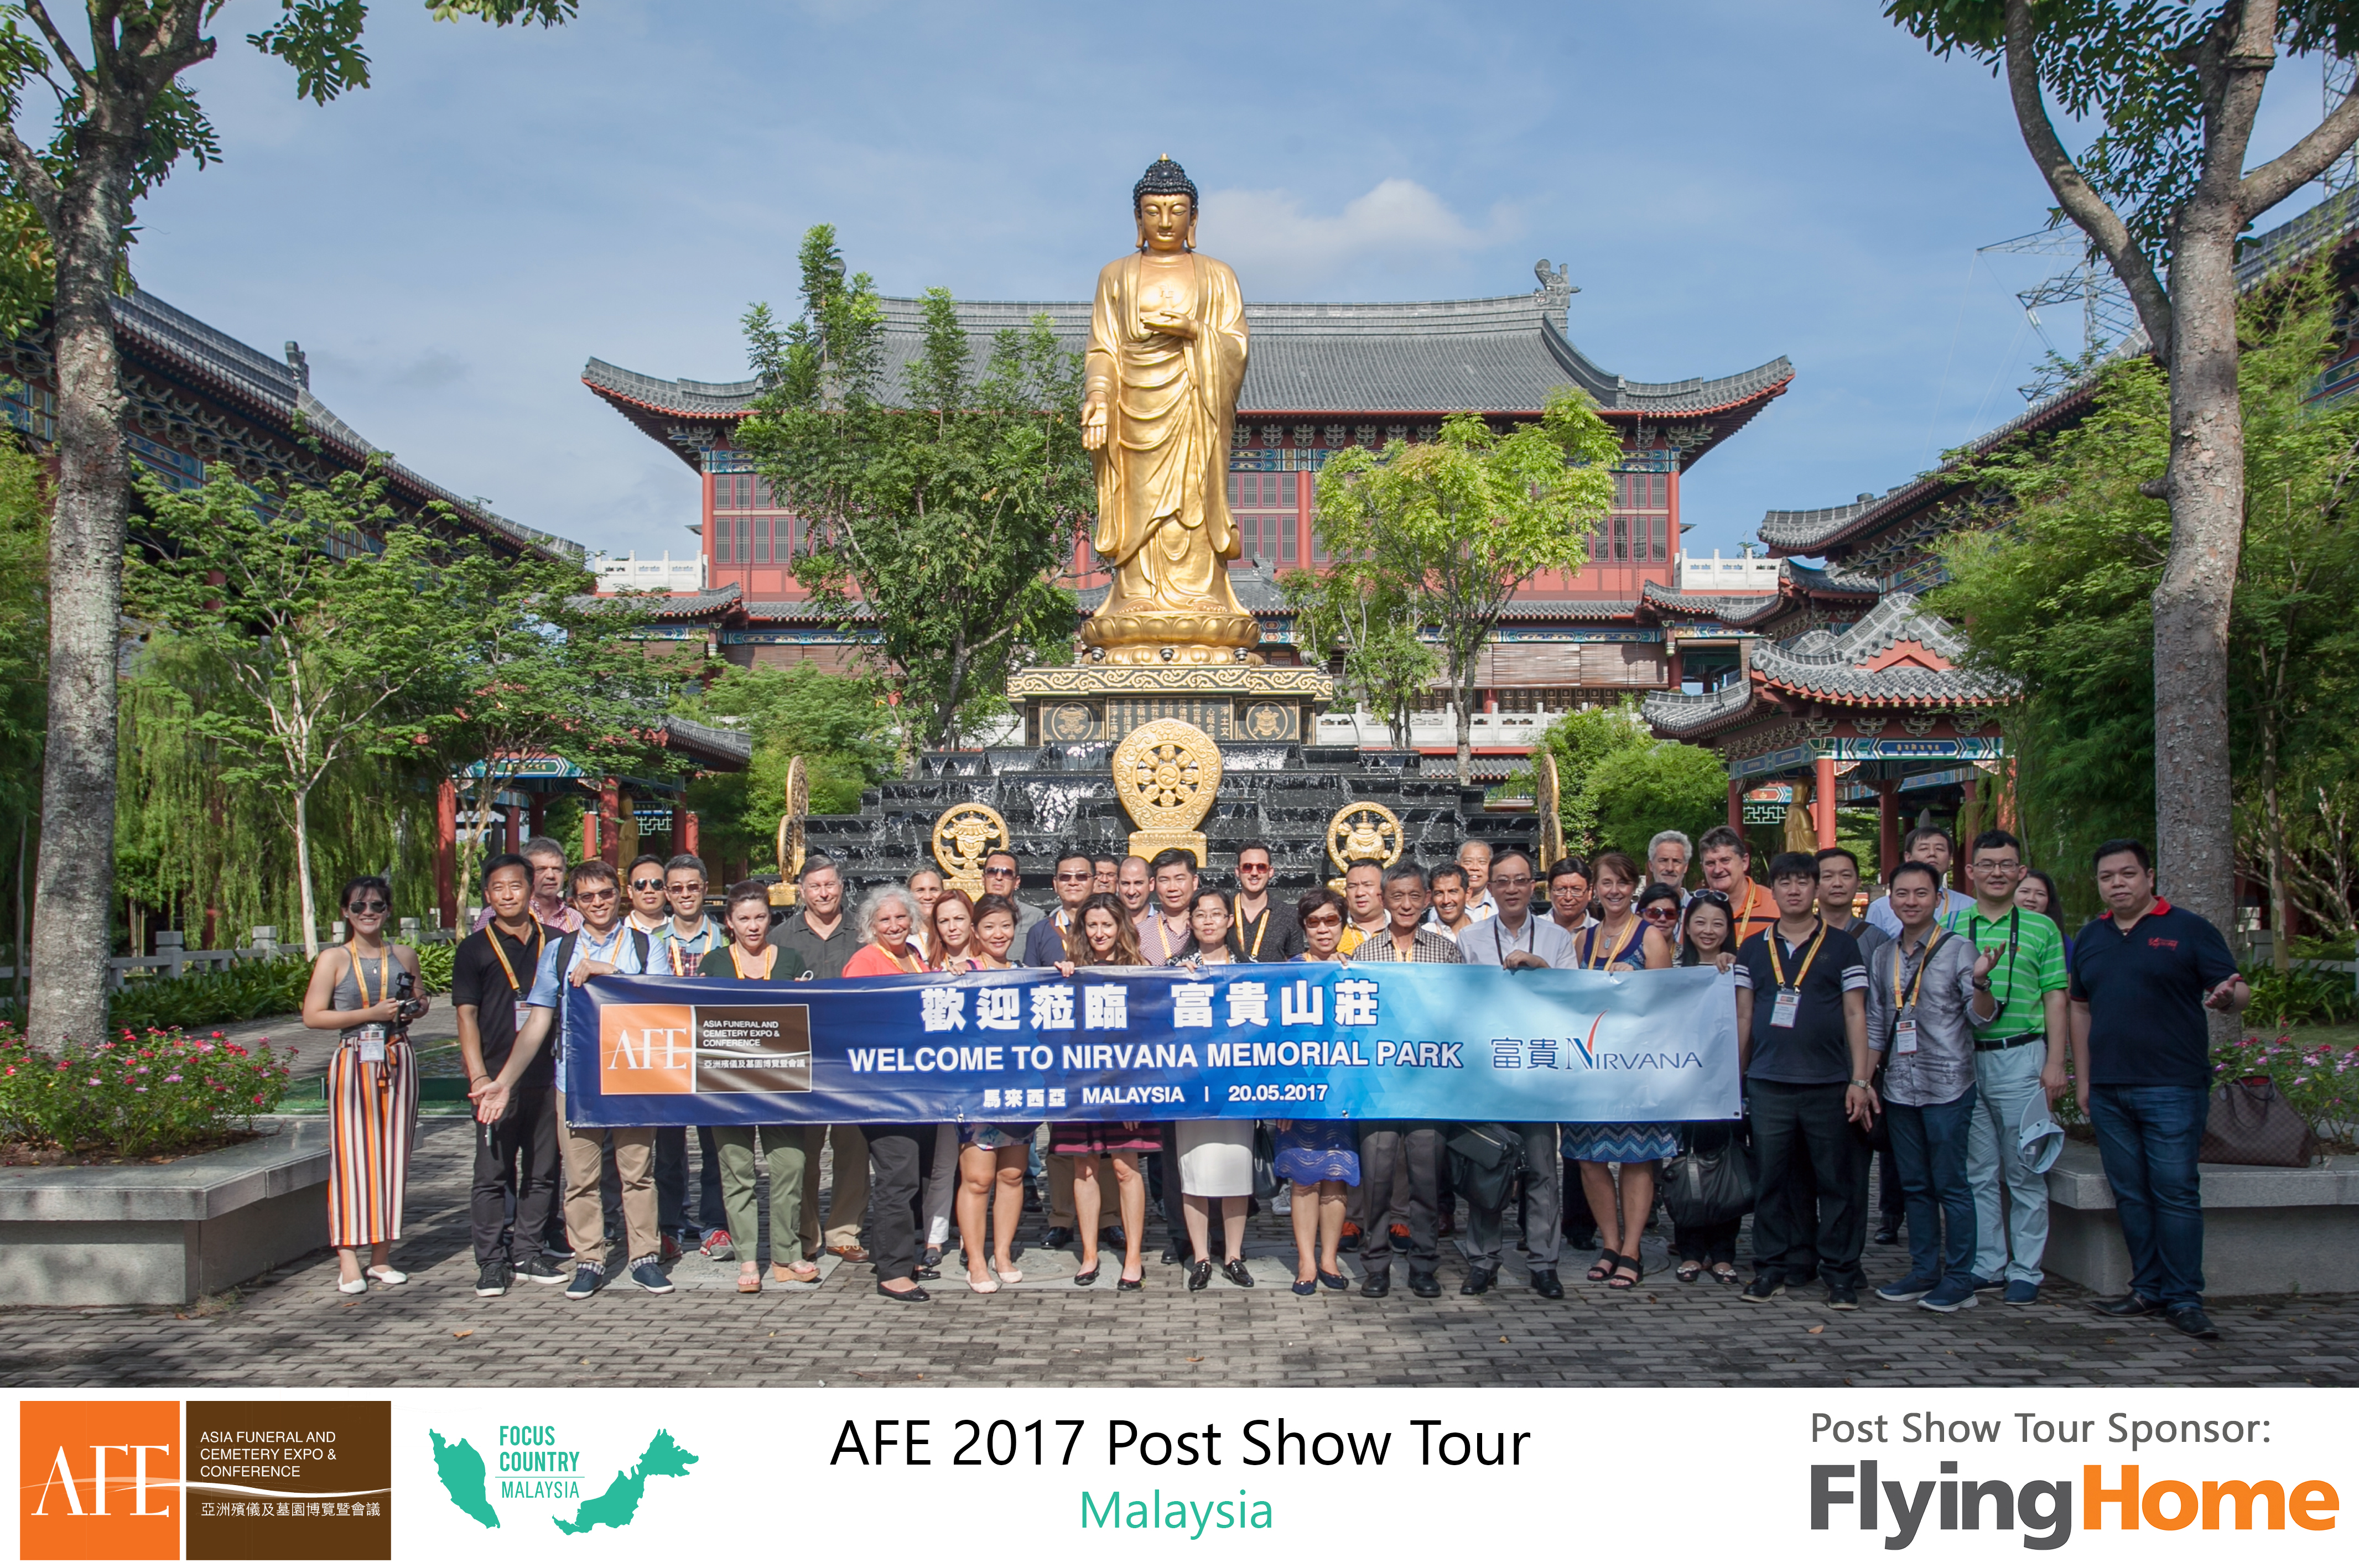 AFE Post Show Tour 2017 Day 2 - 18